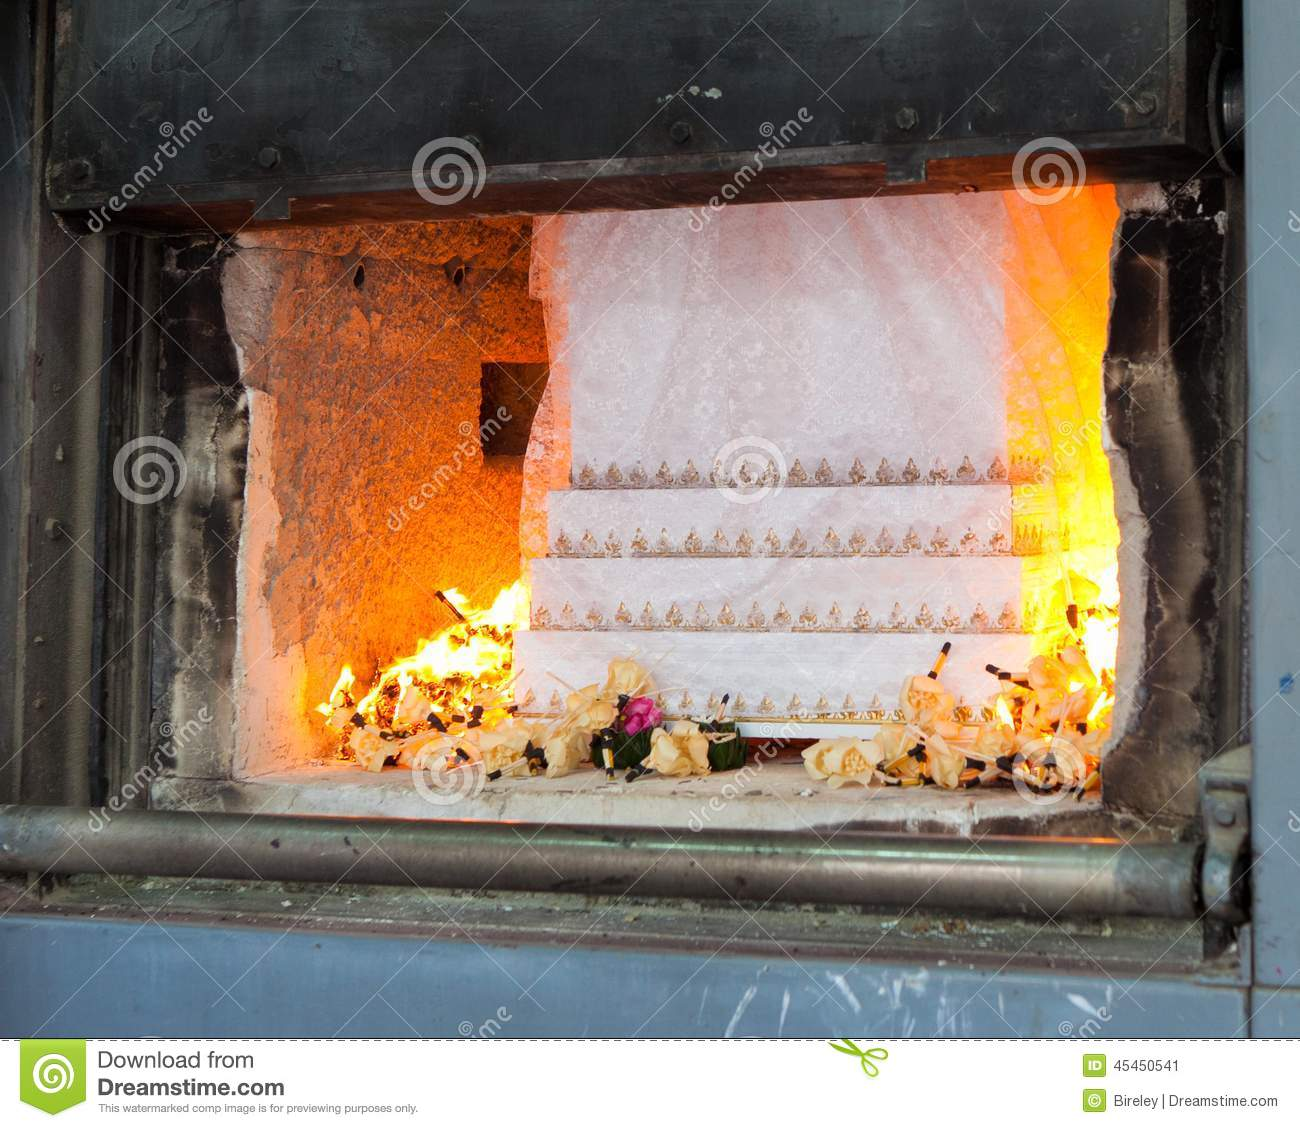 cremation business plan Free cremation cremation sample business plan for cremation - business plan # 31943327410.